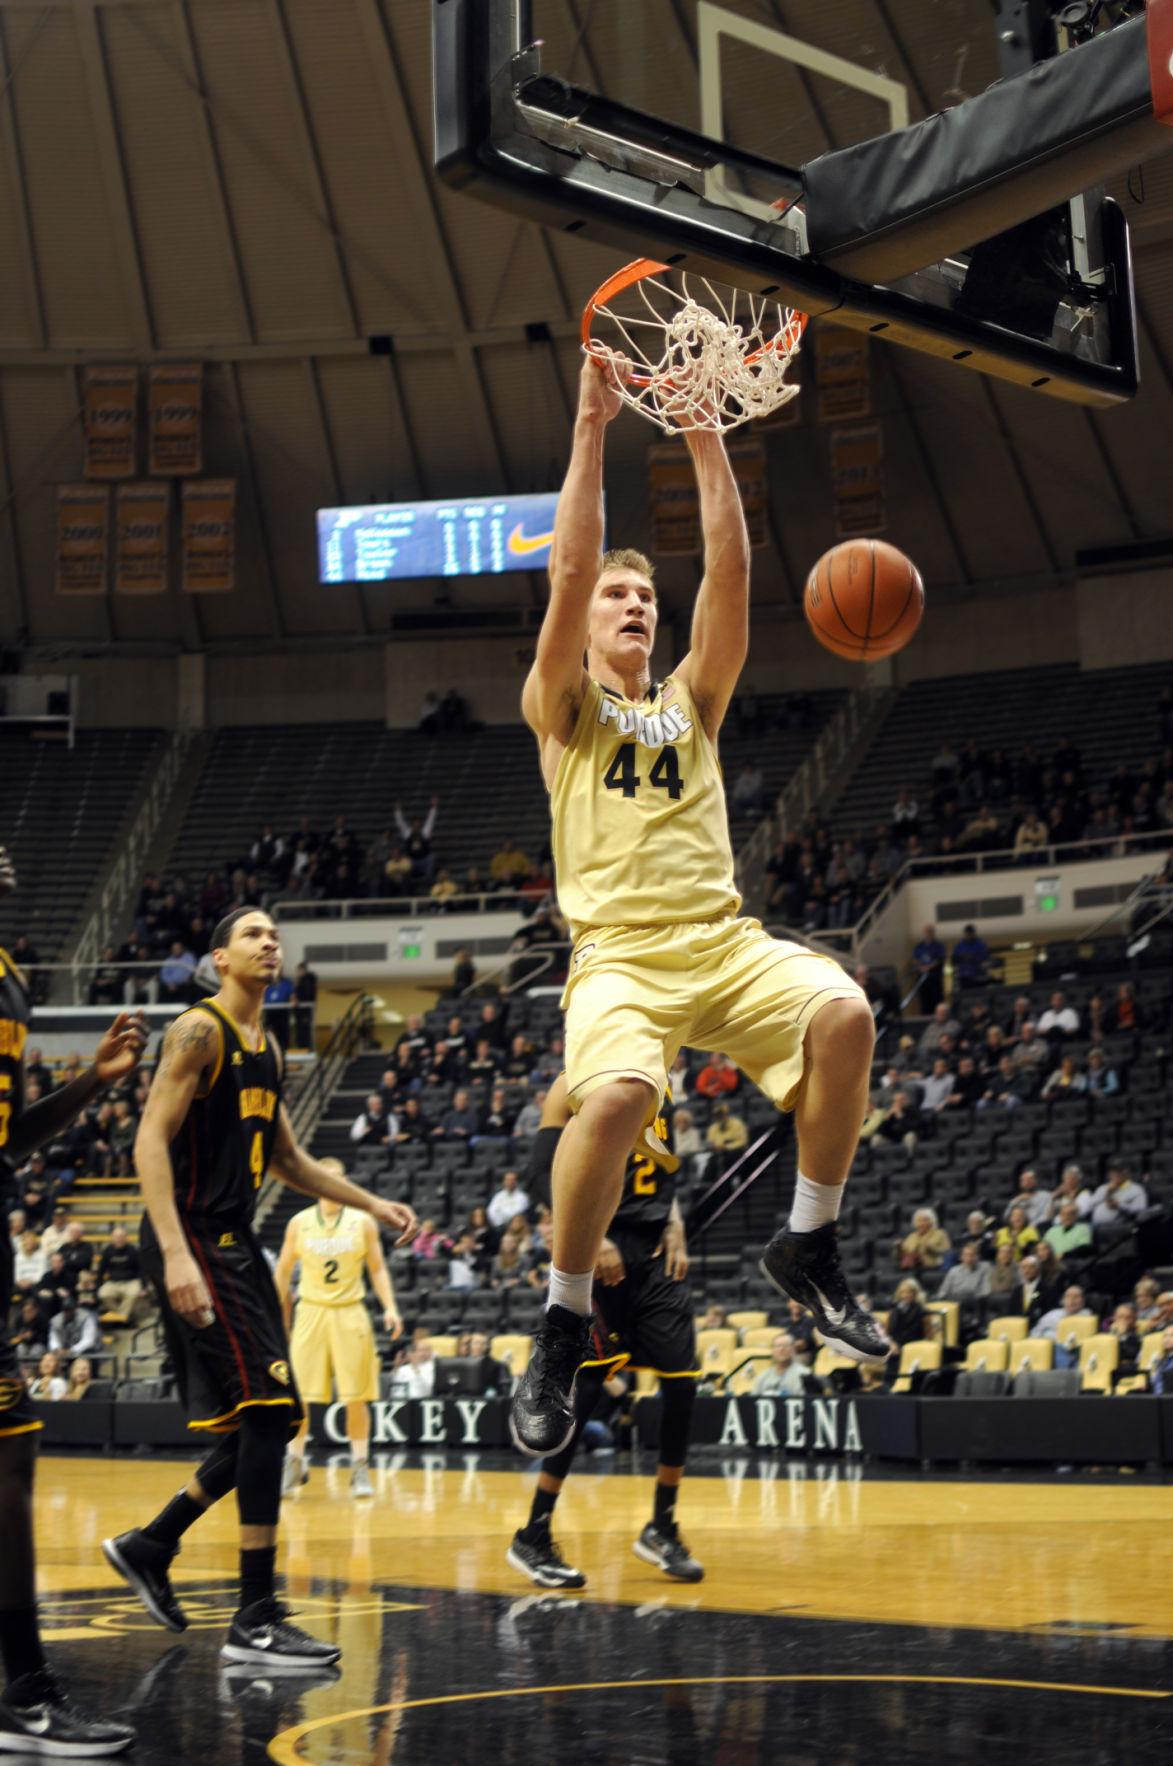 Purdue Basketball: Boilermakers Haas proves too much for